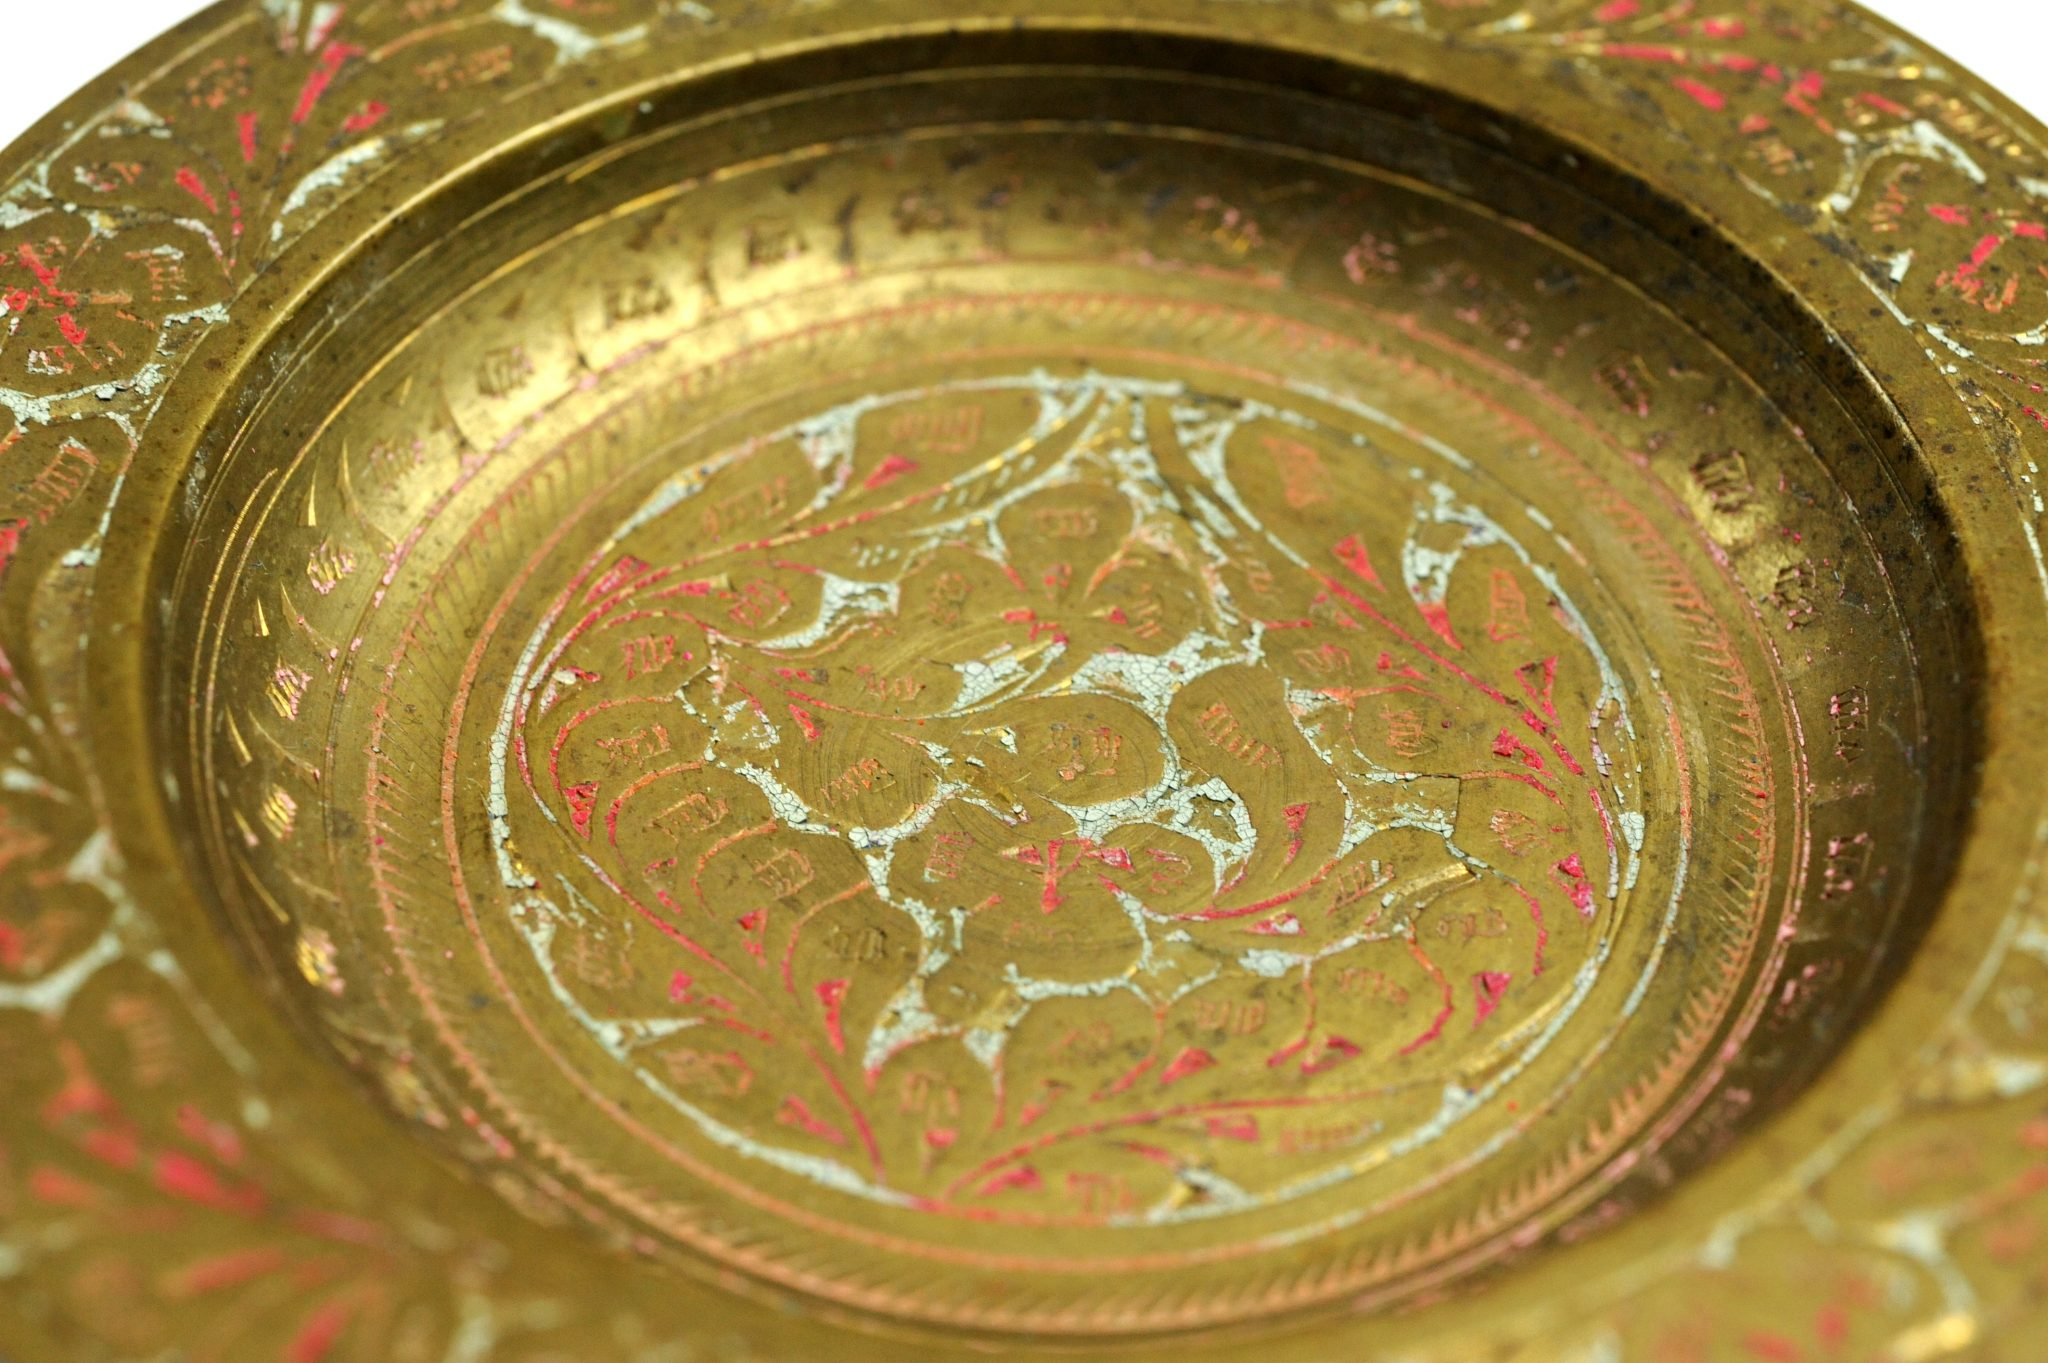 Small Vintage Painted Brass Metal Plate - made in India